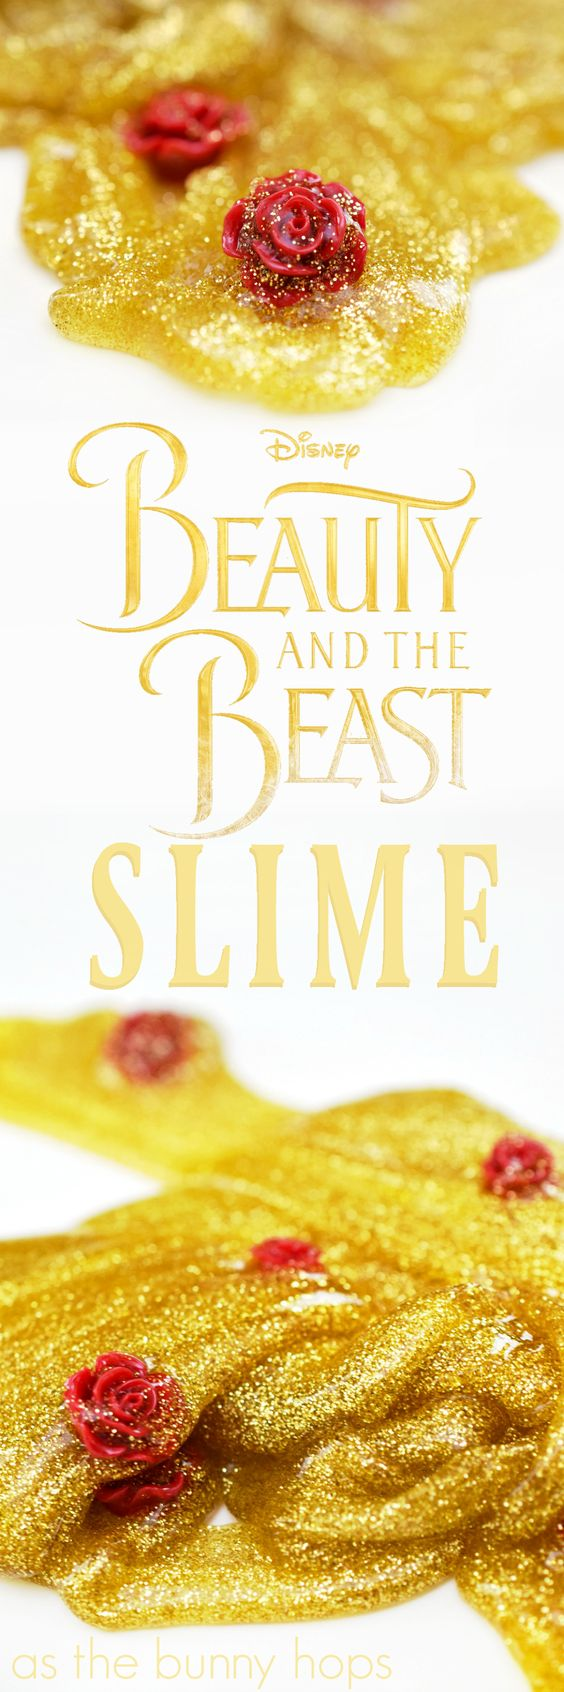 Beauty And The Beast Slime.